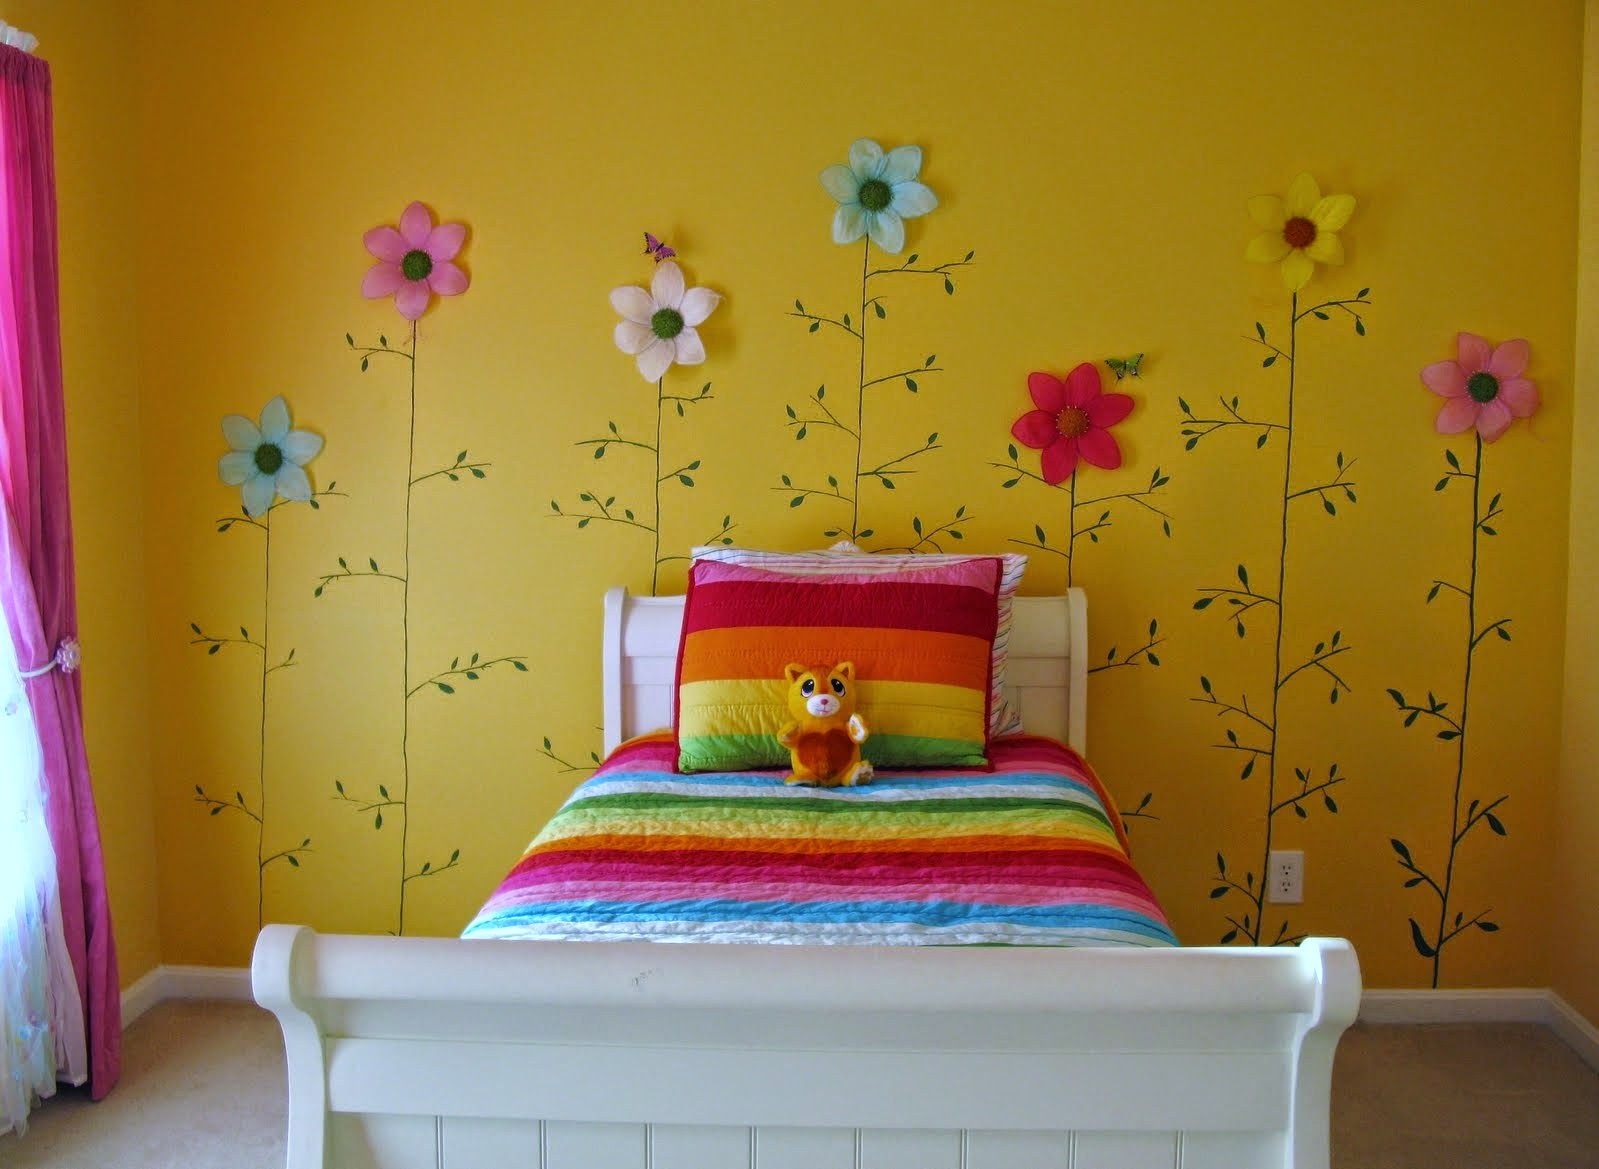 7 Inspiring Kid Room Color Options For Your Little Ones: Little Girls Bedroom Ideas On A Budget